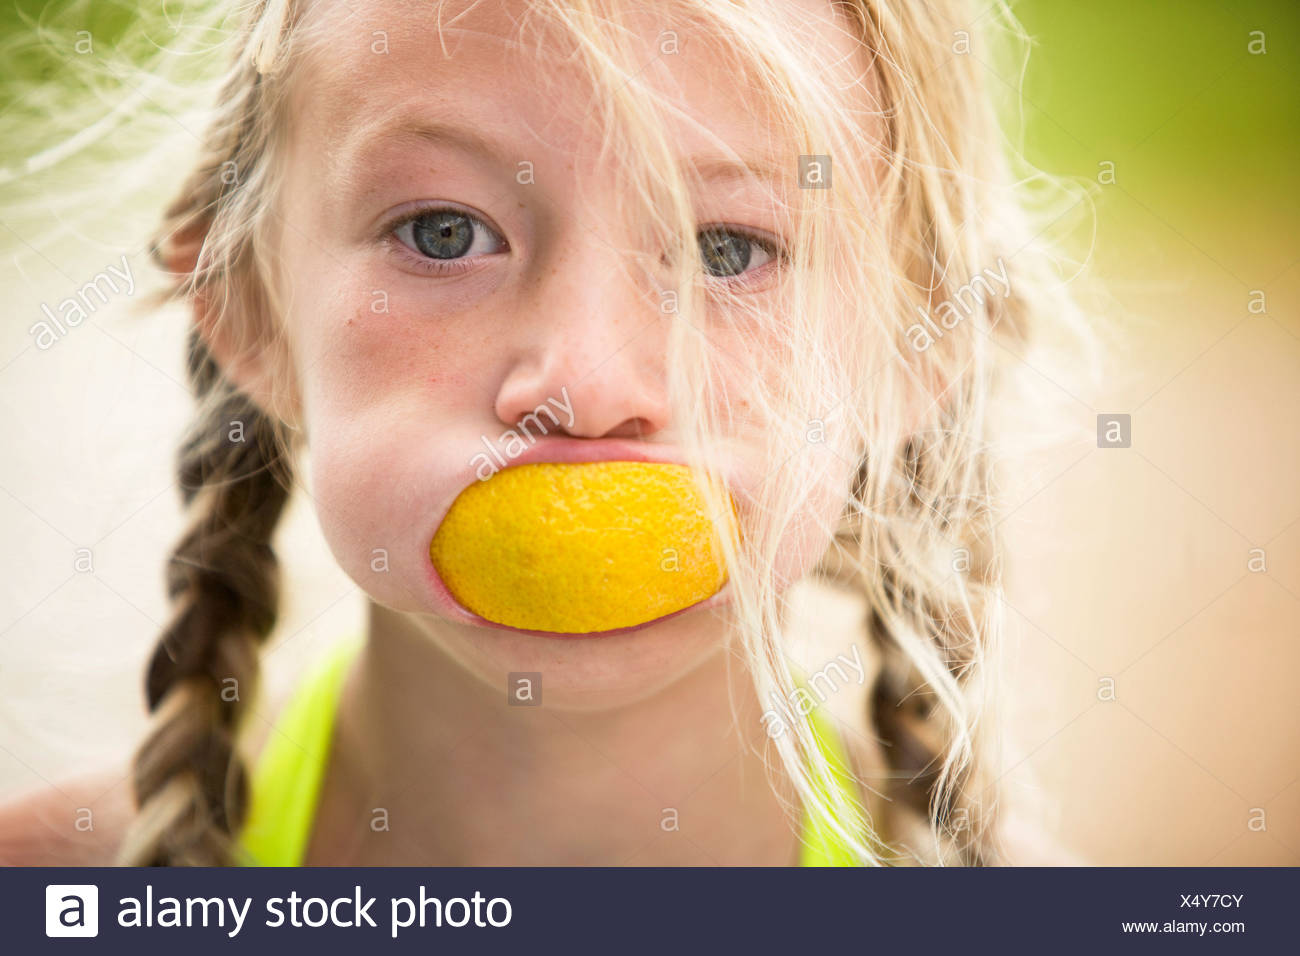 young girl with orange peel in mouth - Stock Image